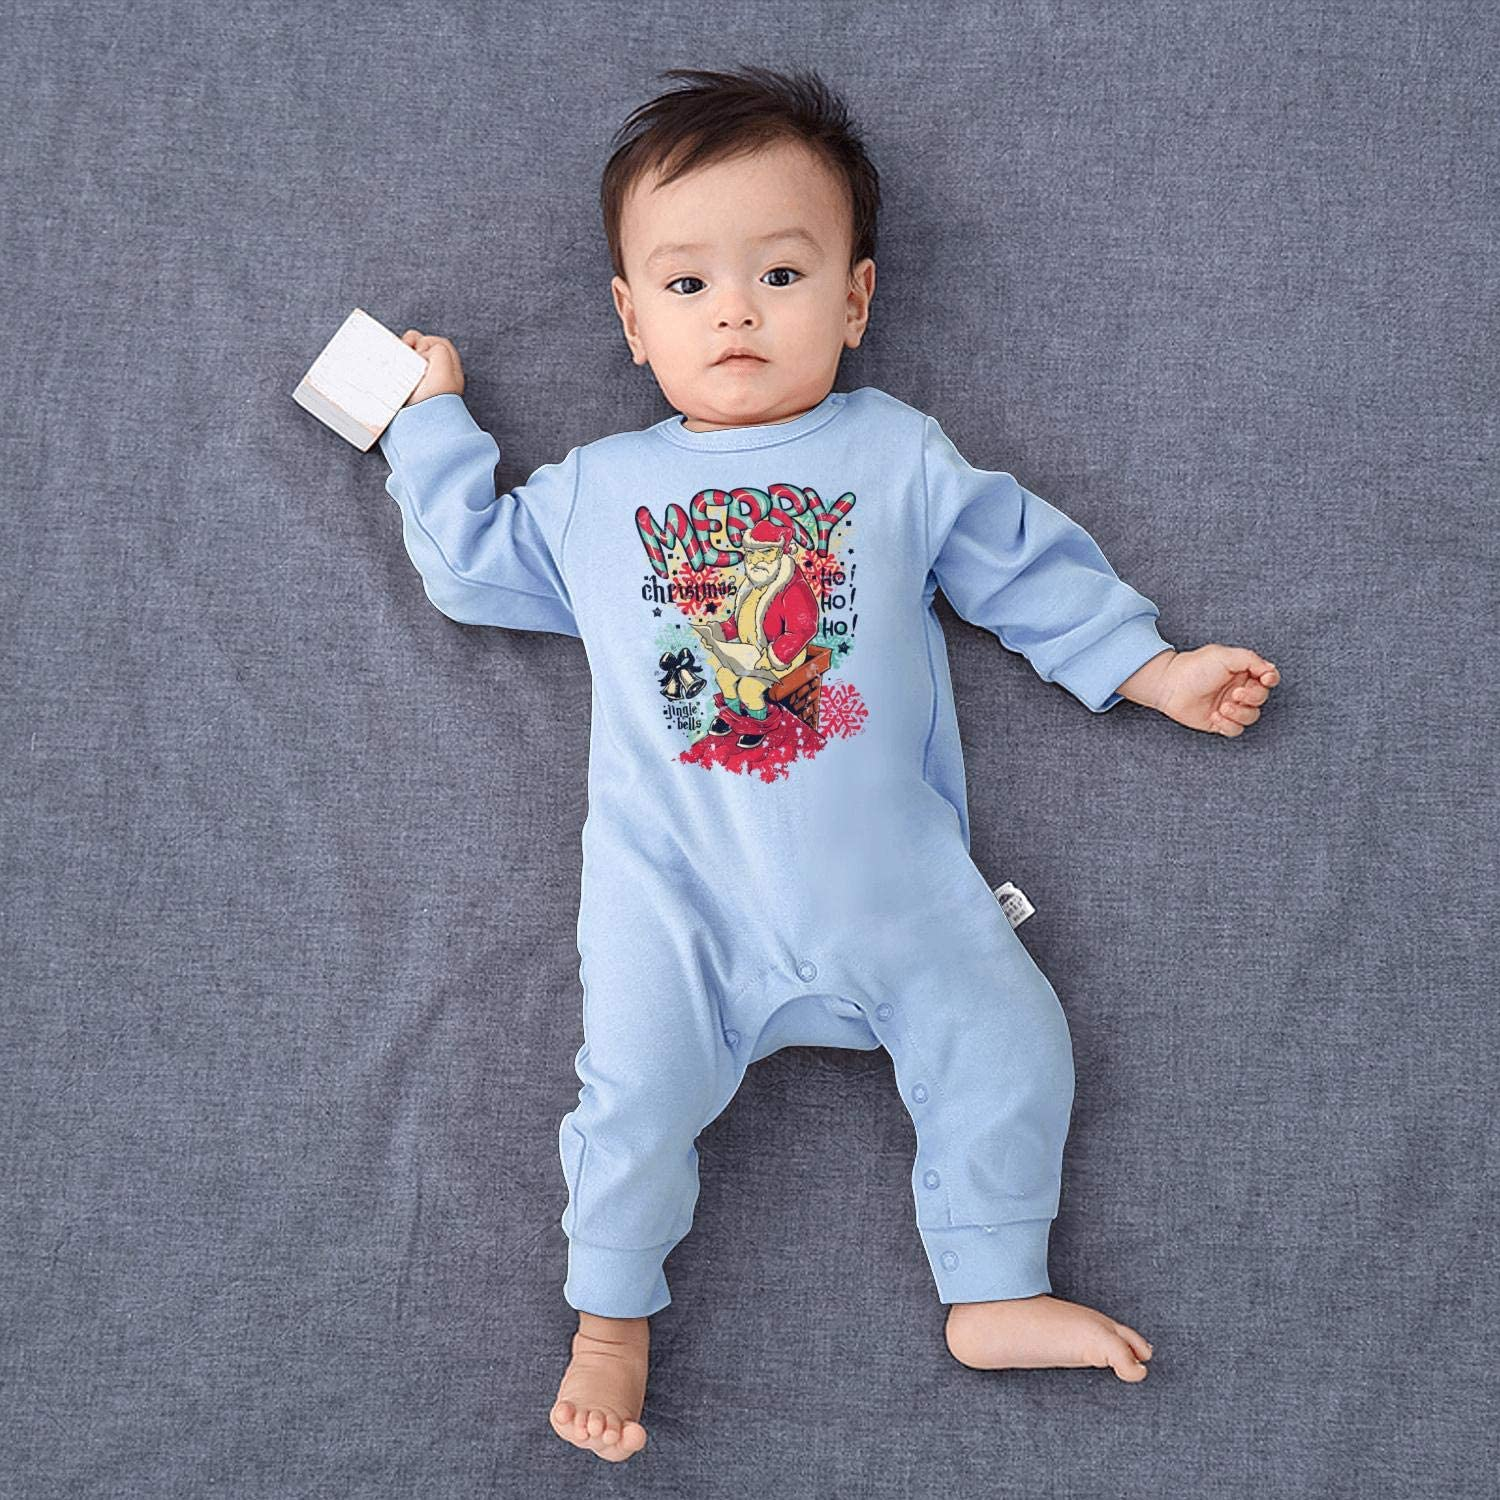 Happiest Christmas Holiday Baby Onesie Organic Cotton Novelty Soft Girl Long Sleeve Playsuit